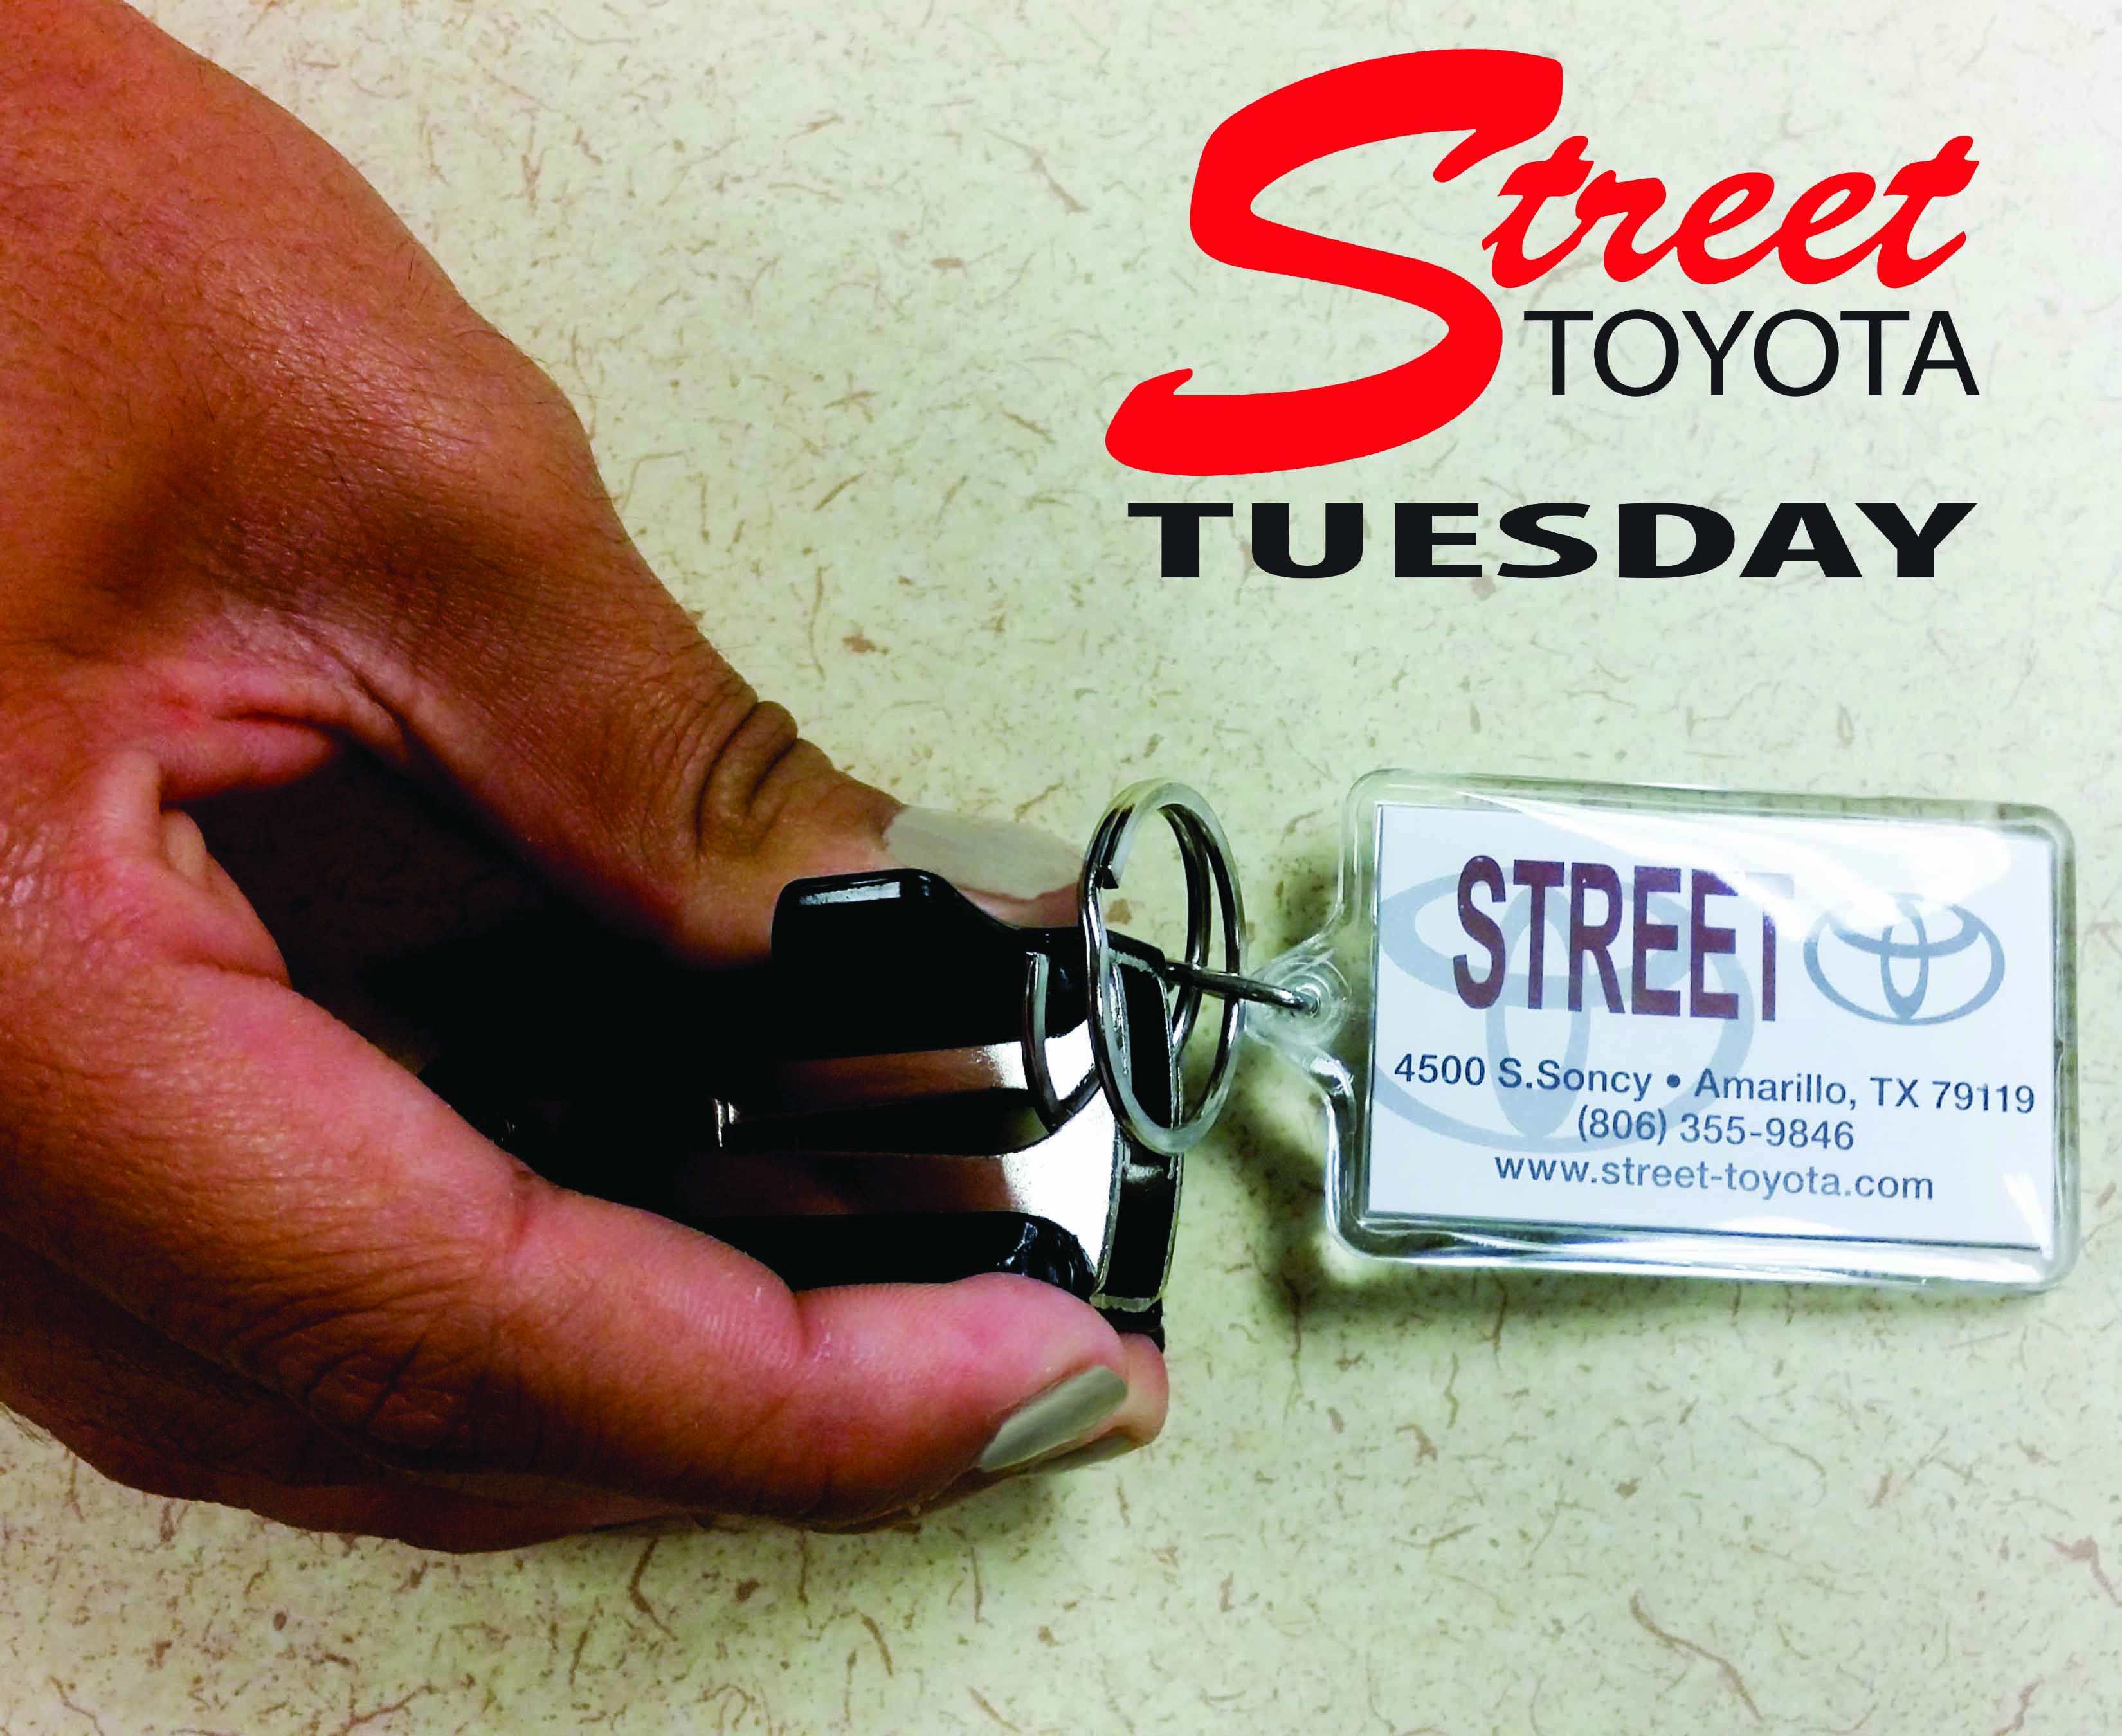 Street Toyota Tuesday 1 Do You Ever Find It Hard To Get Your Keys On A Key Ring It S Time To Upgrade To The Ultimate Key Toyota Hard To Get Staple Removers